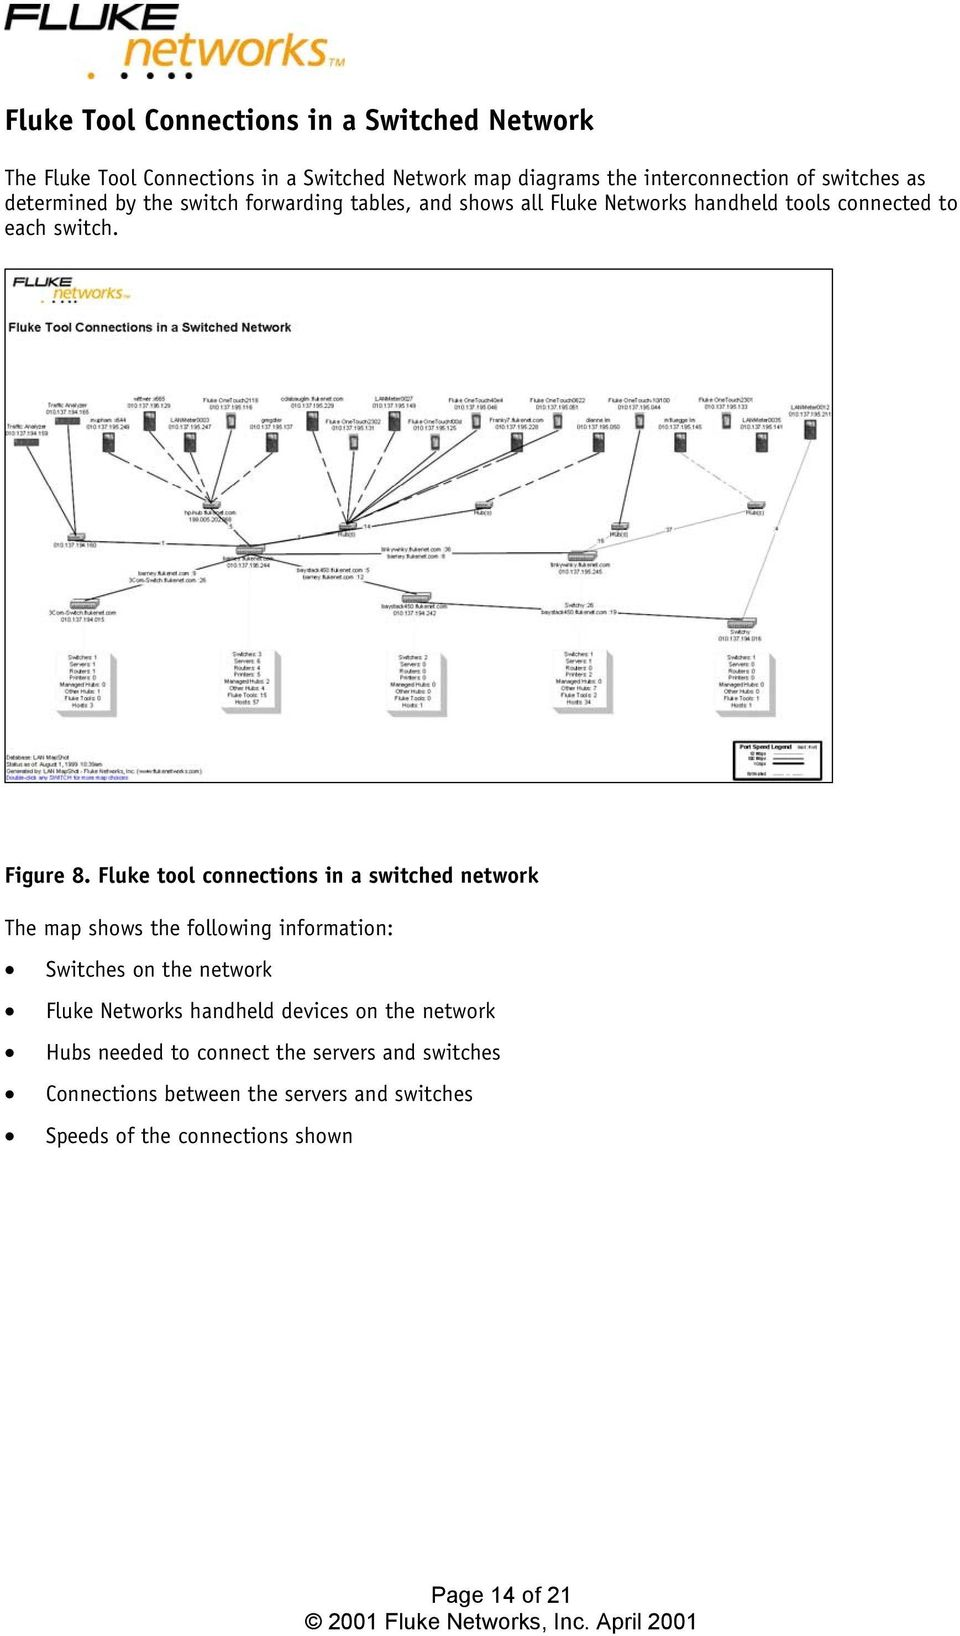 Fluke tool connections in a switched network The map shows the following information: Switches on the network Fluke Networks handheld